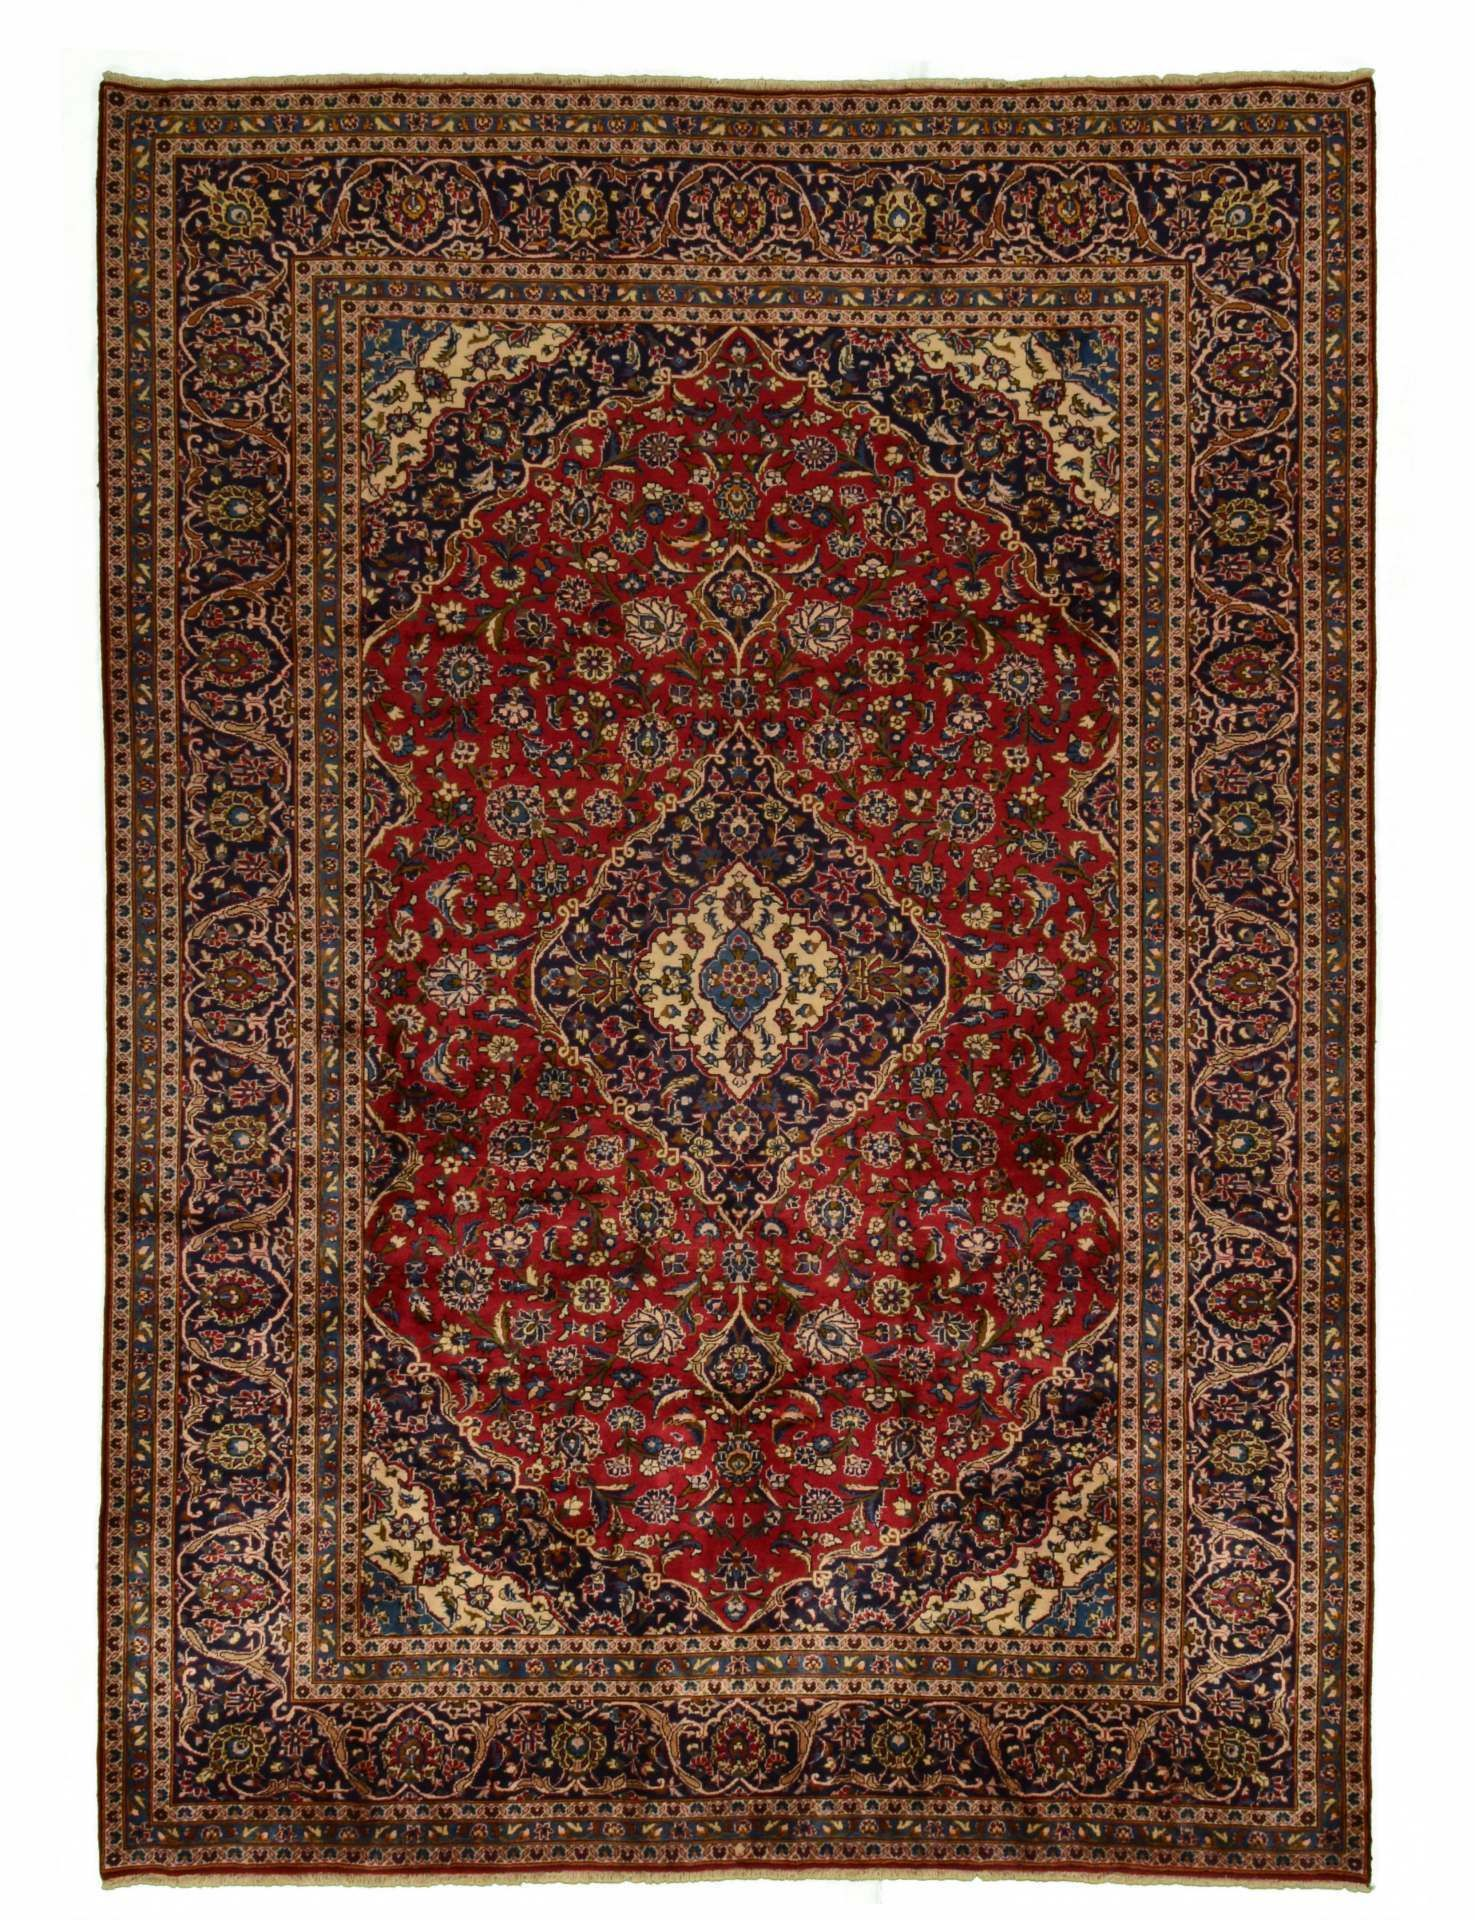 Kashan Teppich 354x254 Kashan Rug Rugs On Carpet Persian Carpet